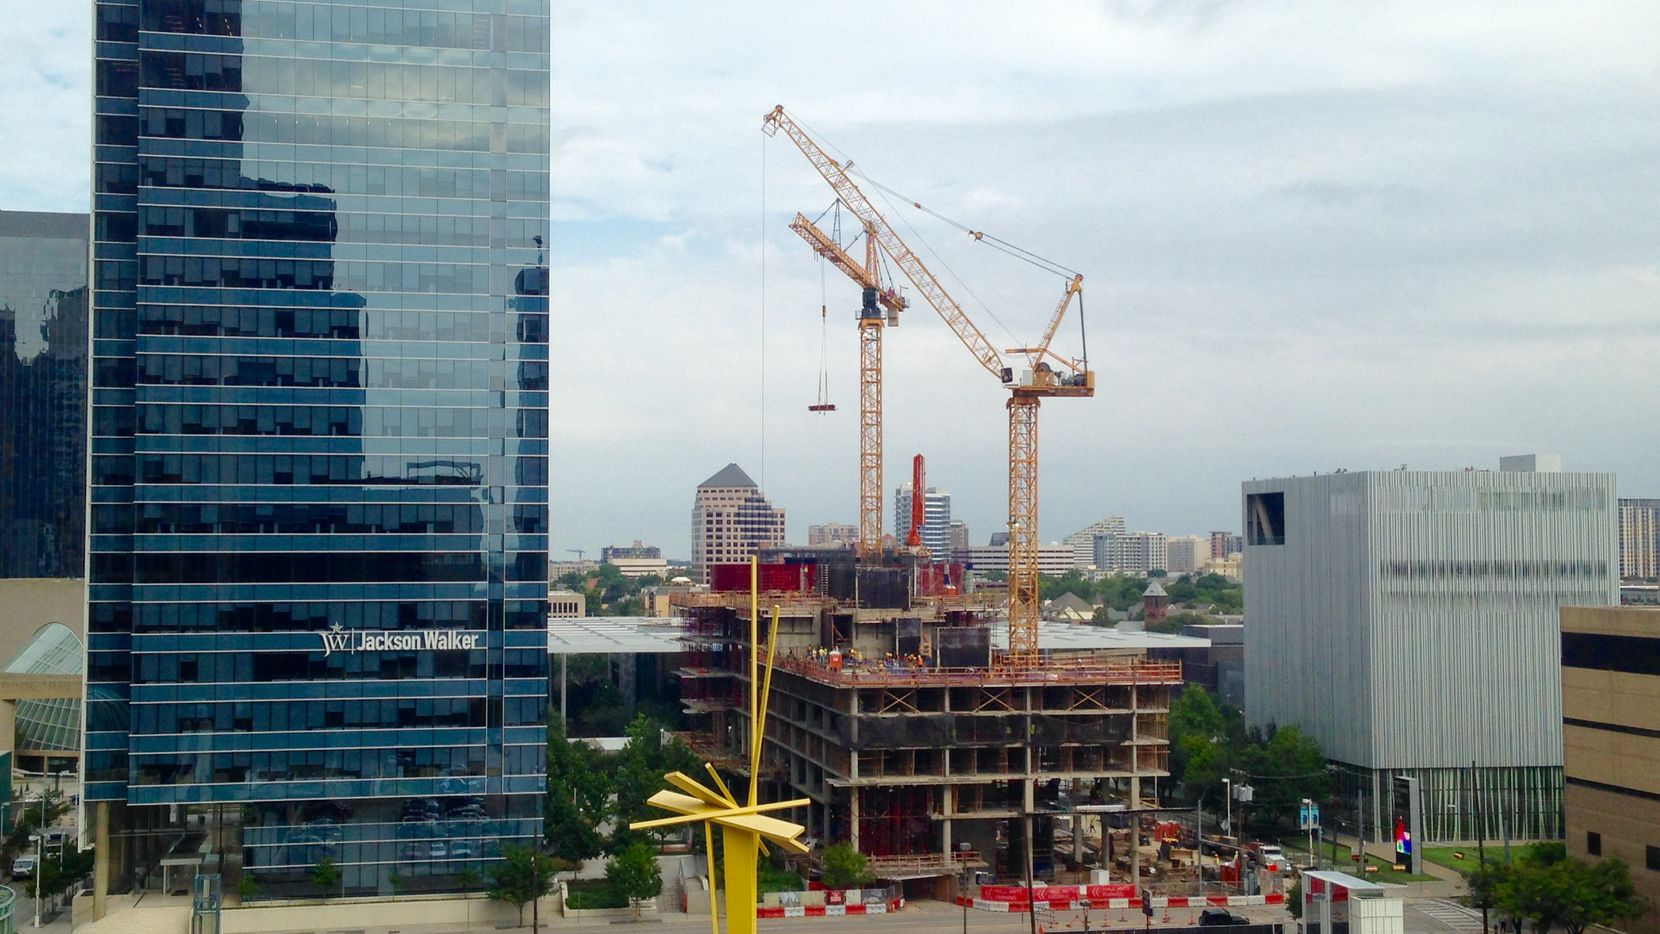 The Hall Arts Residences and Hotel is under construction on Ross Avenue between the KPMG Plaza office tower and the Wyly Theater.